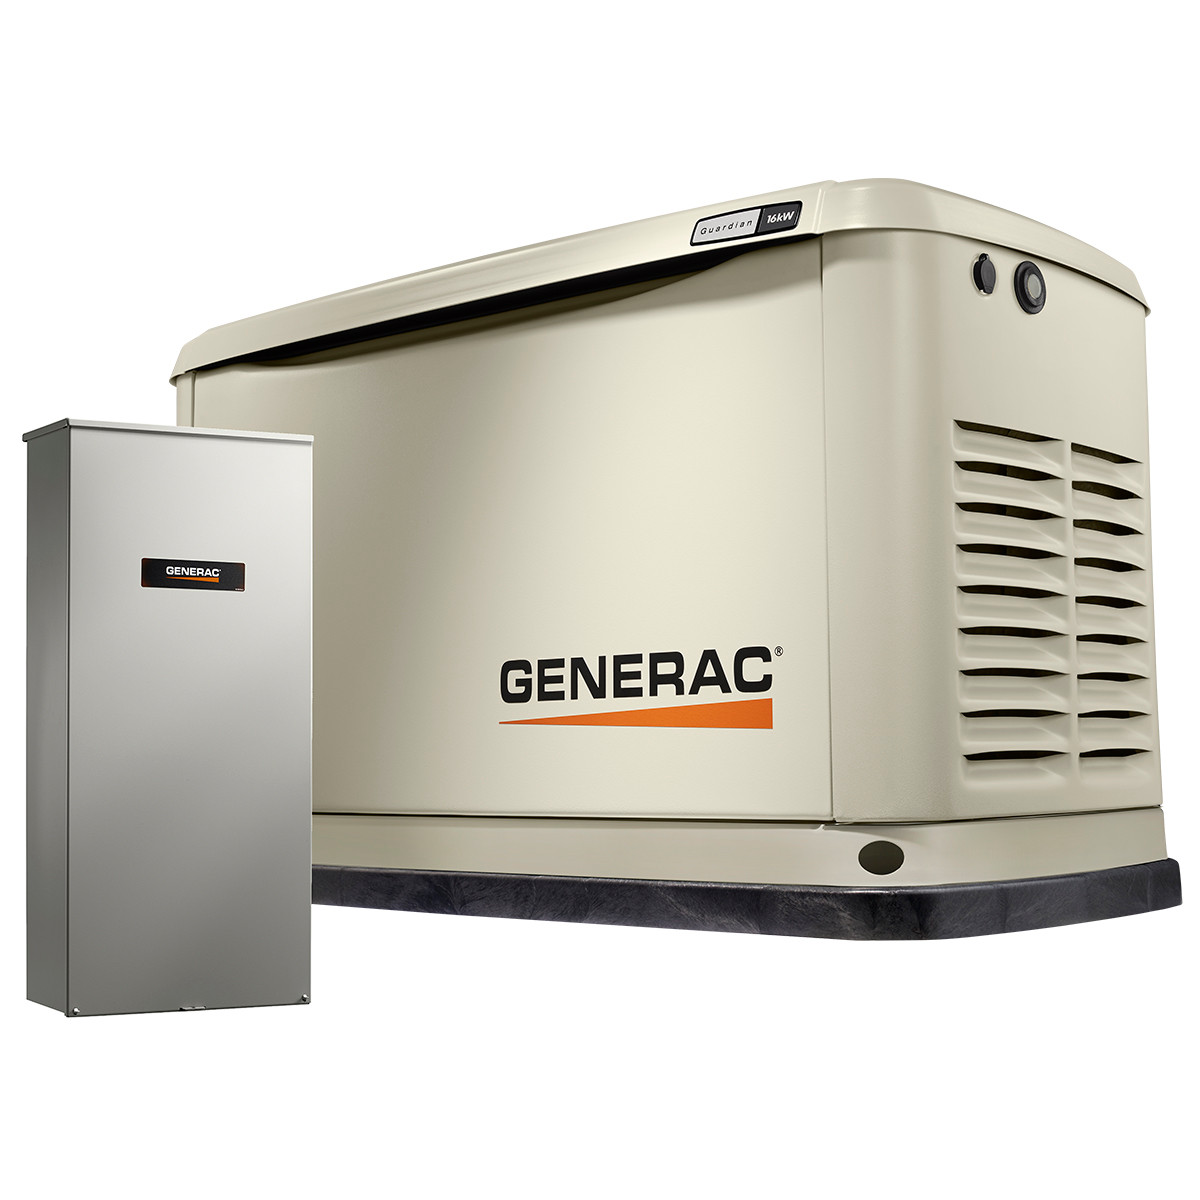 hight resolution of generac 70361 16kw guardian generator with wi fi 100a 16 circuit transfer switch